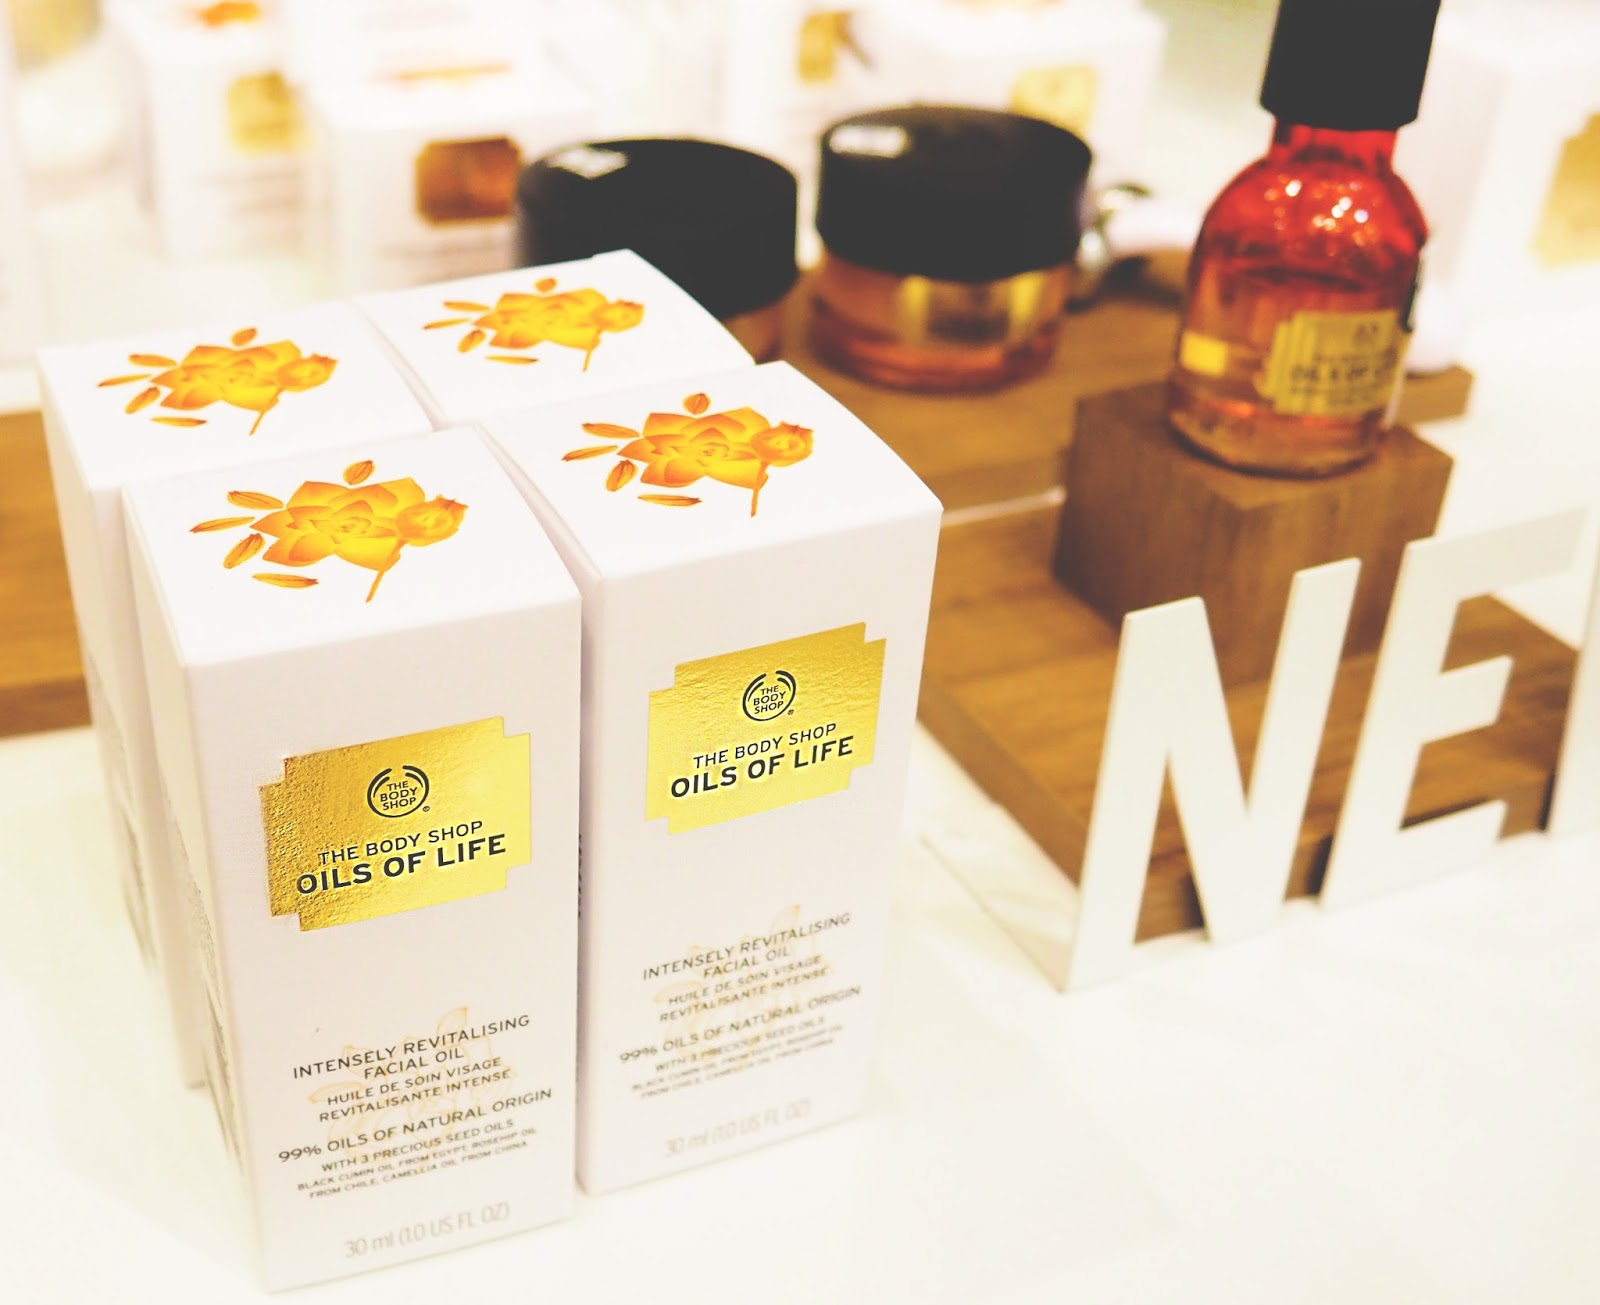 The Body Shop Leicester Oils of Life